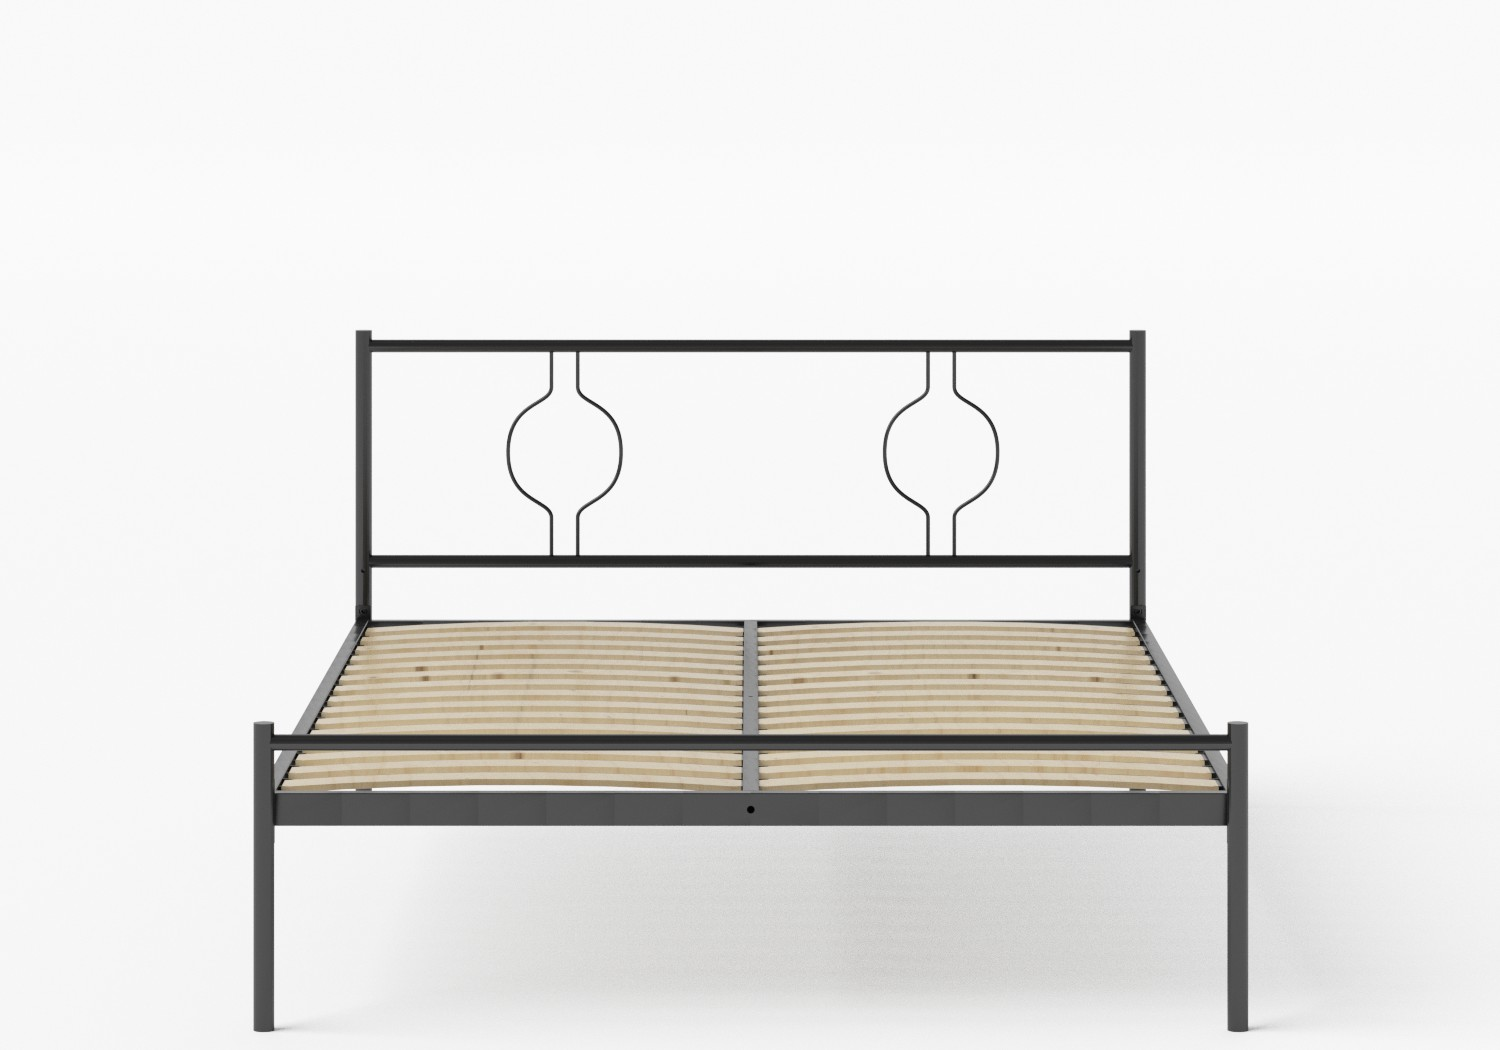 Meiji Iron/Metal Bed in Satin Black shown with slatted frame